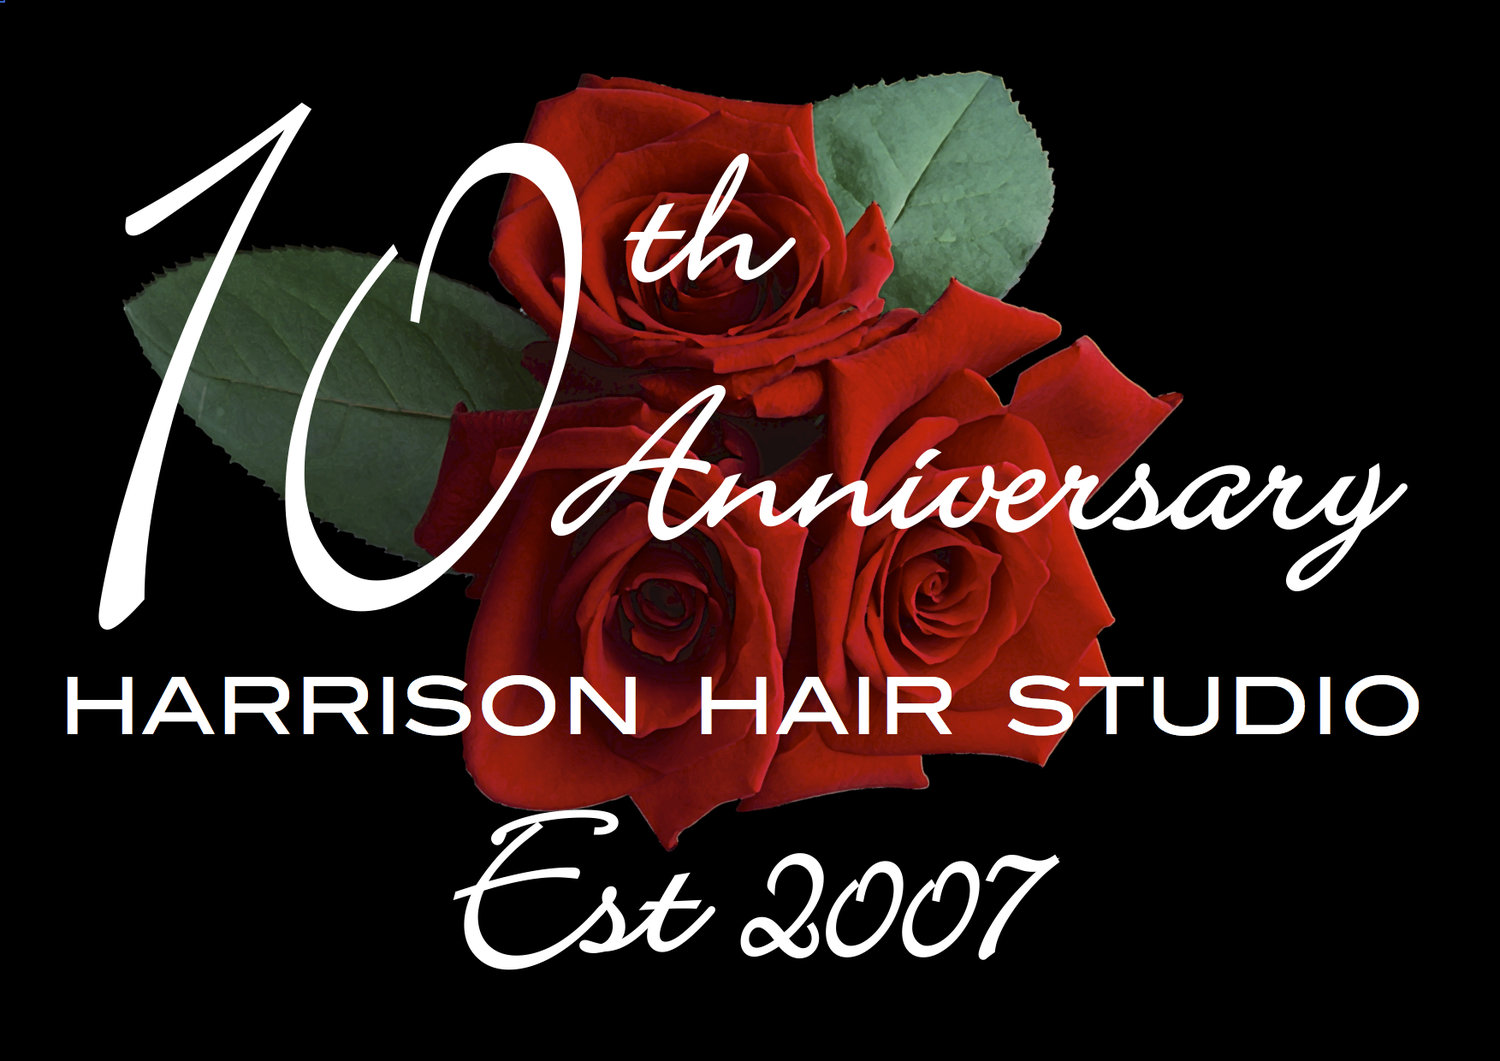 Harrison Hair Studio